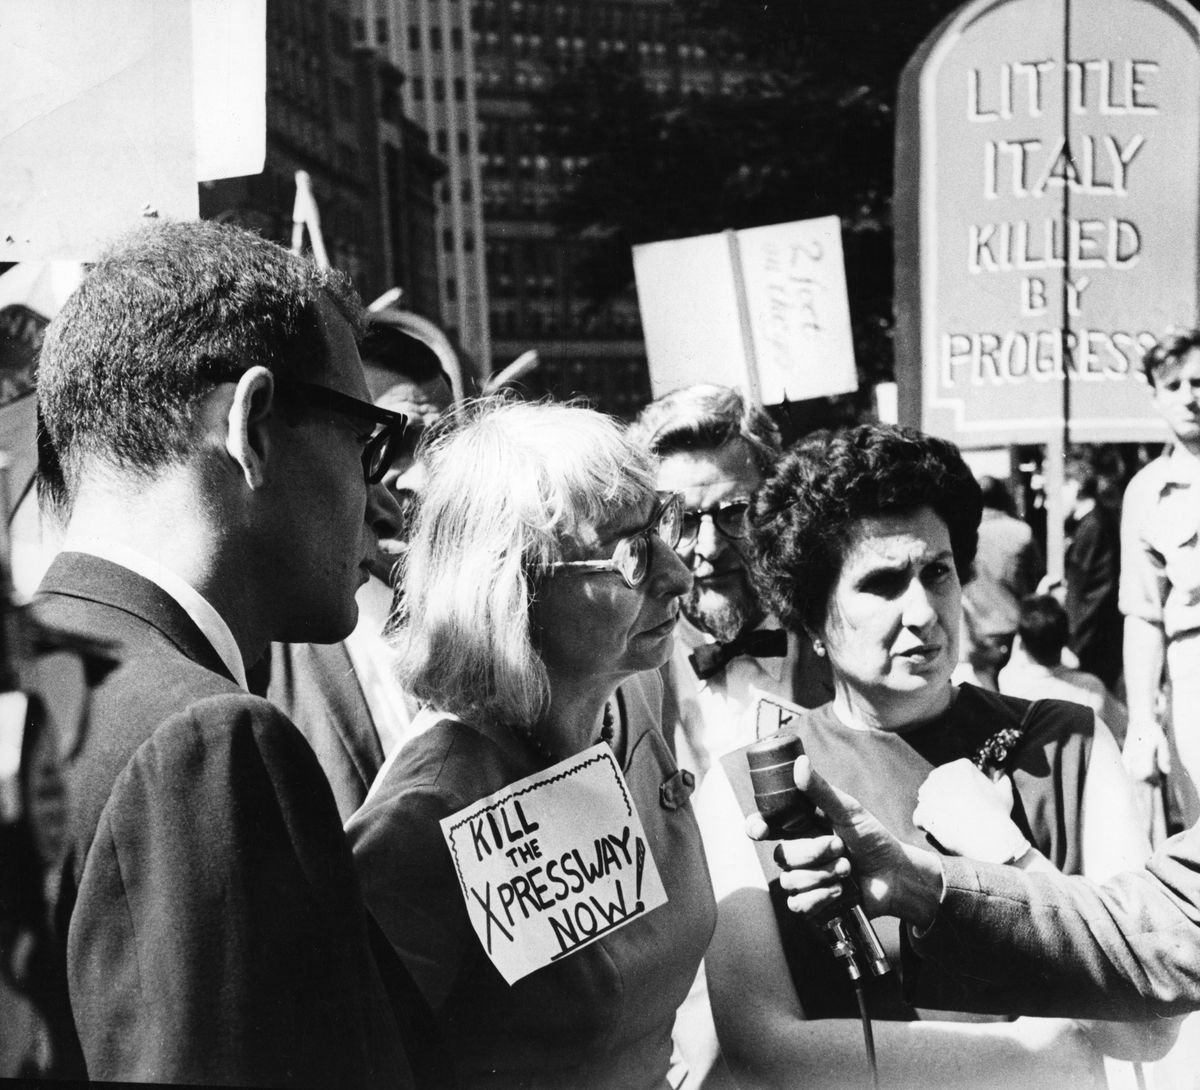 Jane Jacobs at a demonstration against the proposed Lower Manhattan Expressway.